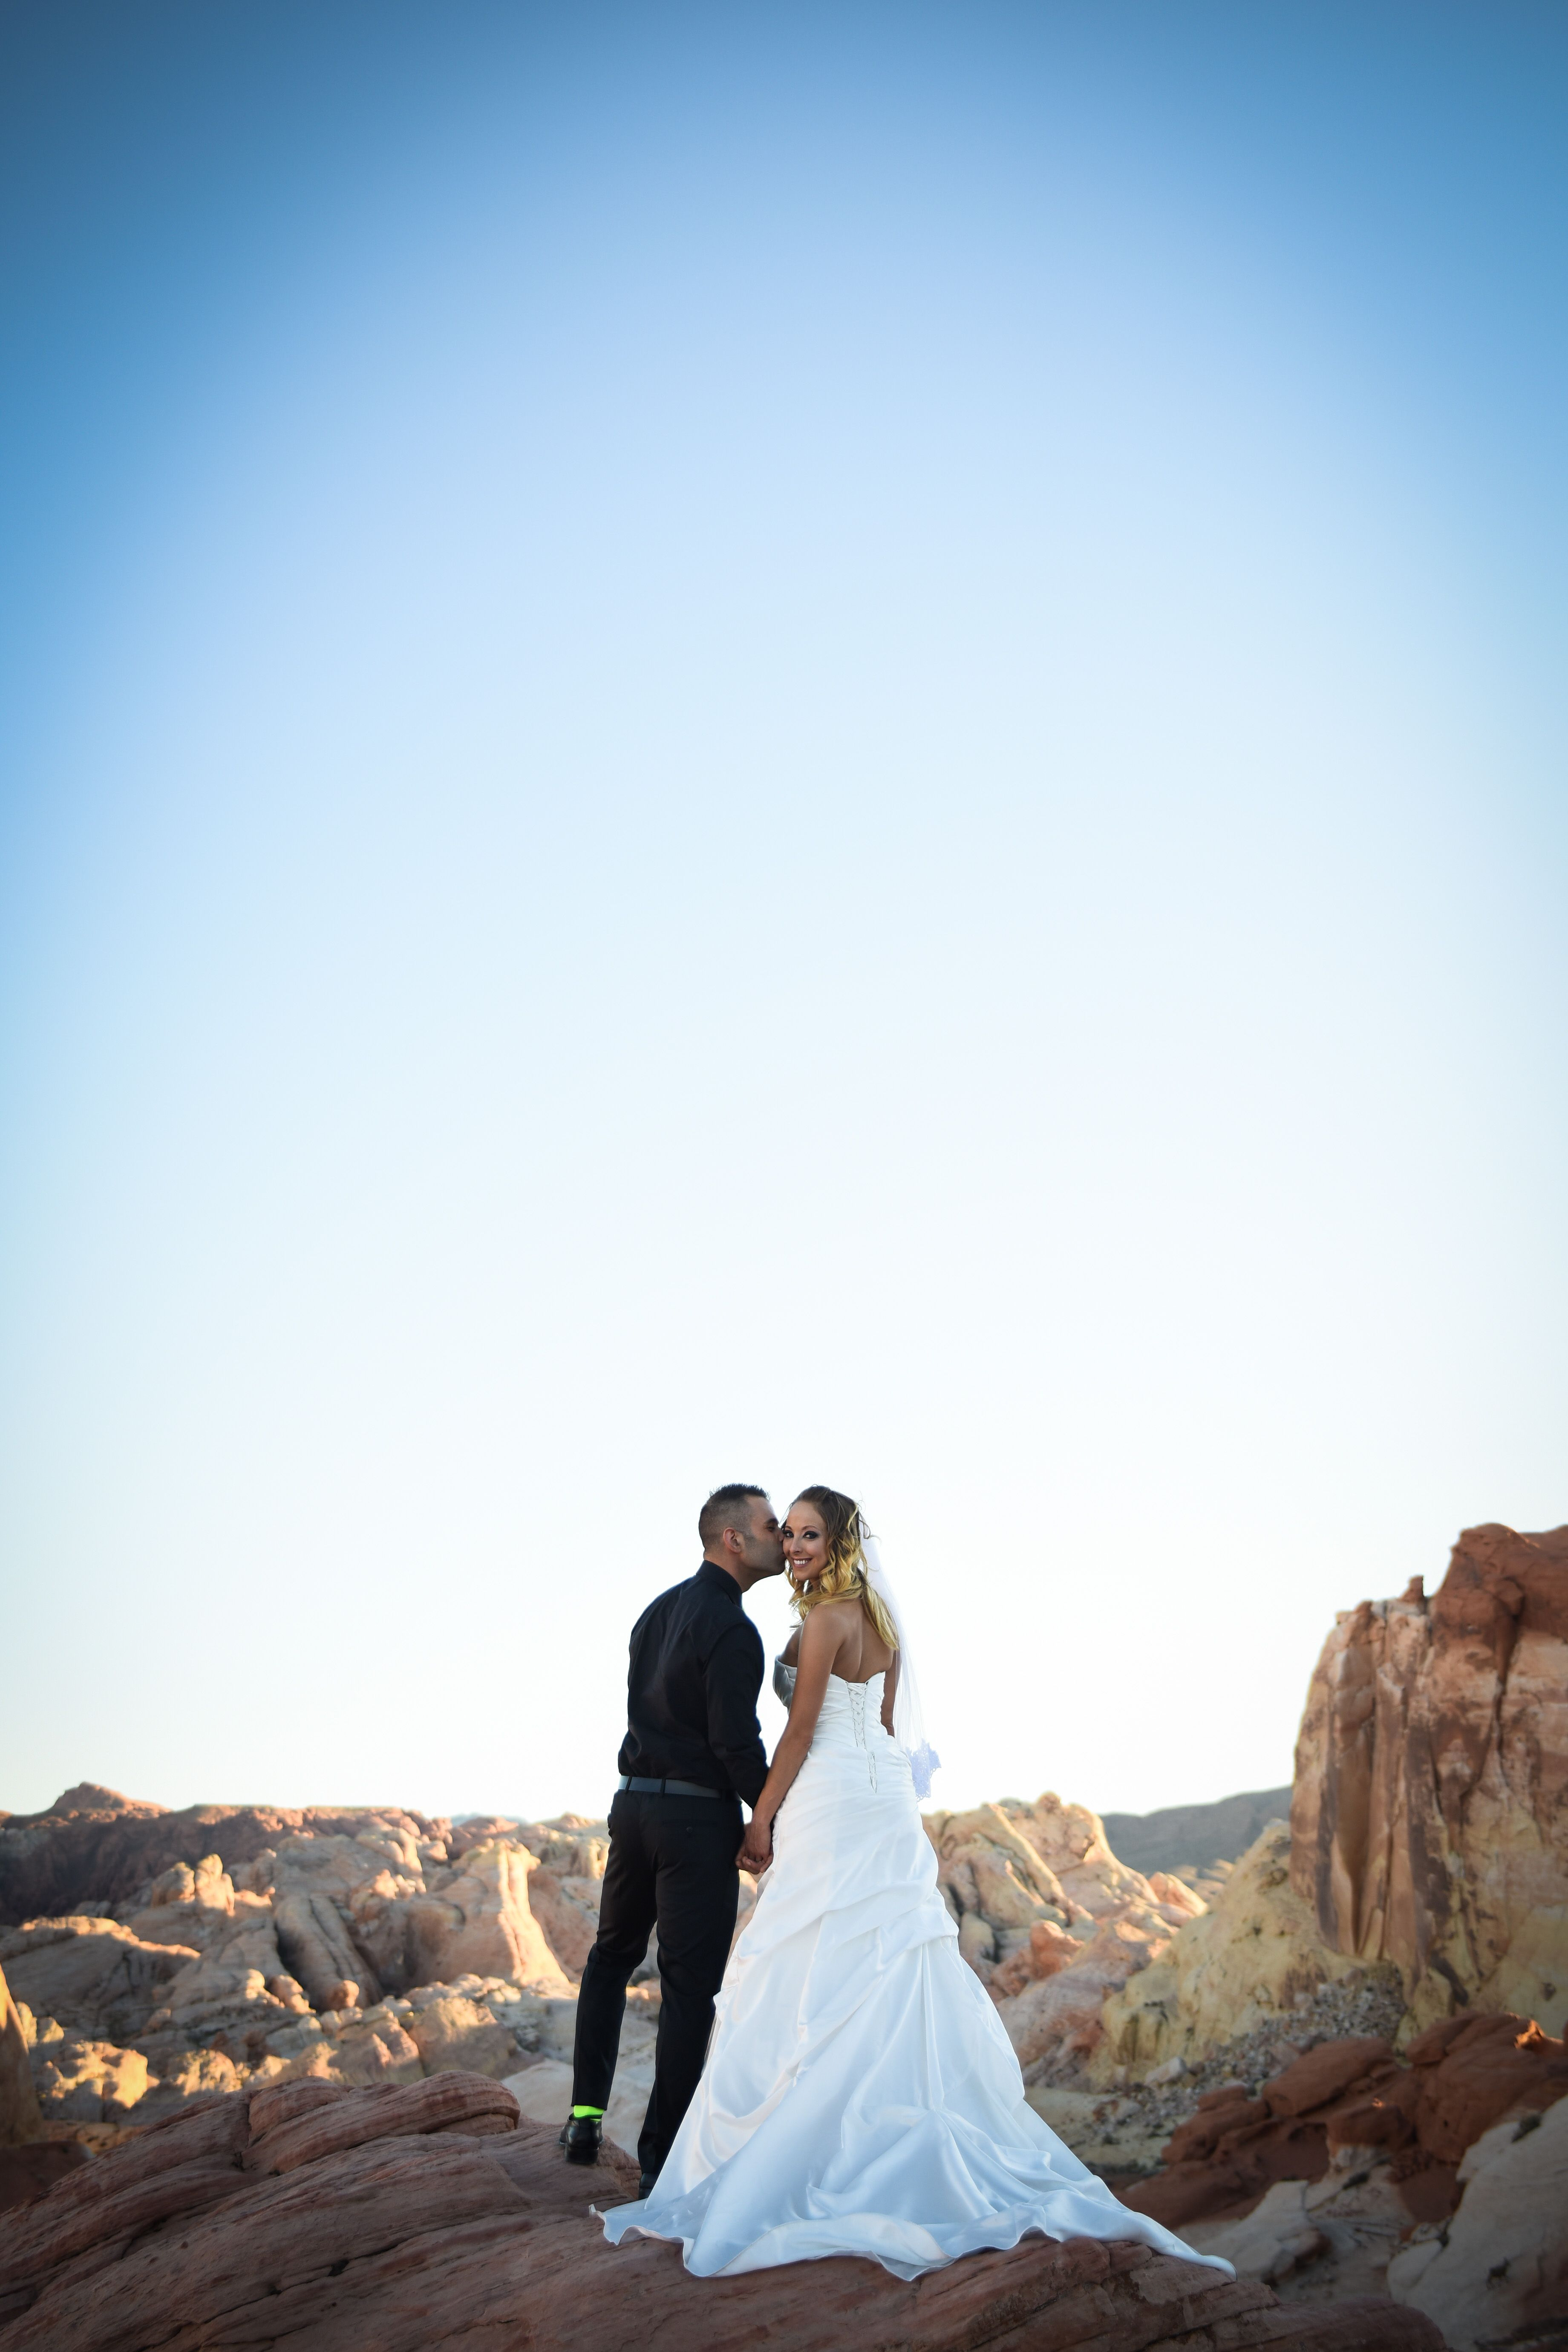 Vegas Wedding Ideas Elopement Planning A For Any Isn T Only Expensive But Can Be Extremely Stressful